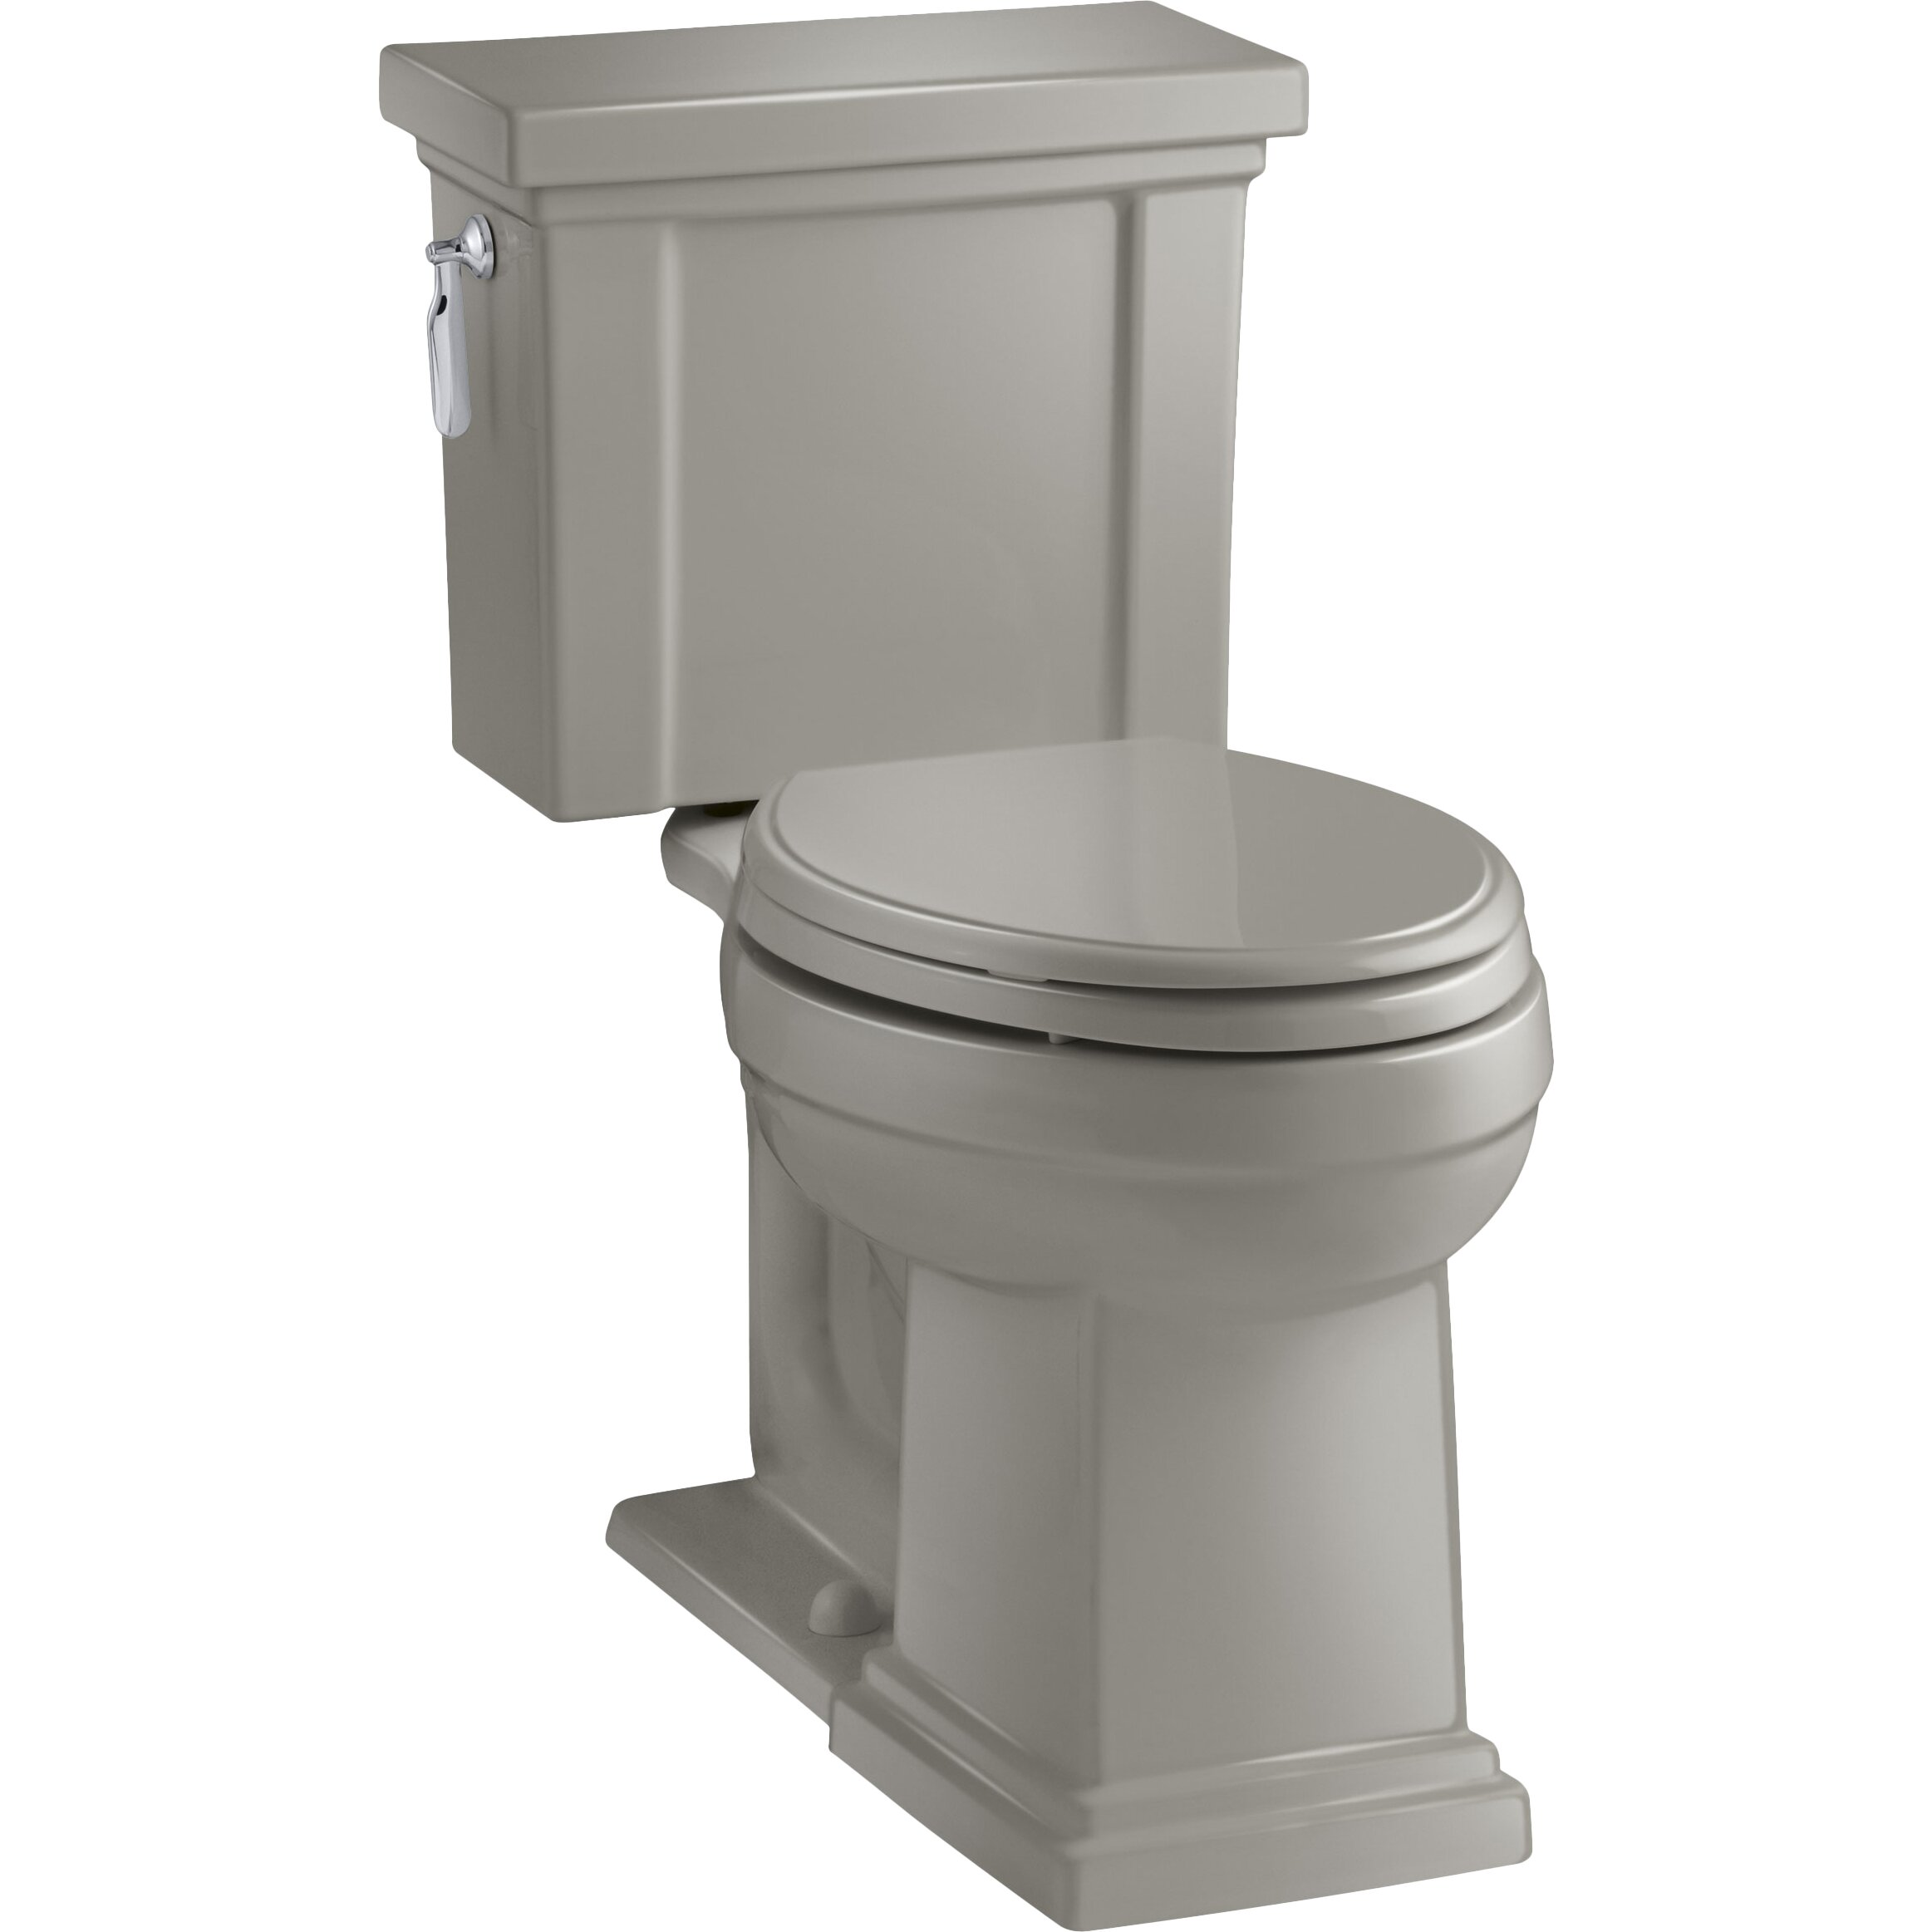 Kohler Tresham Comfort Height 2 Piece Elongated 128 GPF  : Kohler Tresham Comfort Height 2 Piece Elongated 128 GPF Toilet with Aquapiston Flush Technology and Left Hand Trip Lever from www.wayfair.com size 2325 x 2325 jpeg 211kB